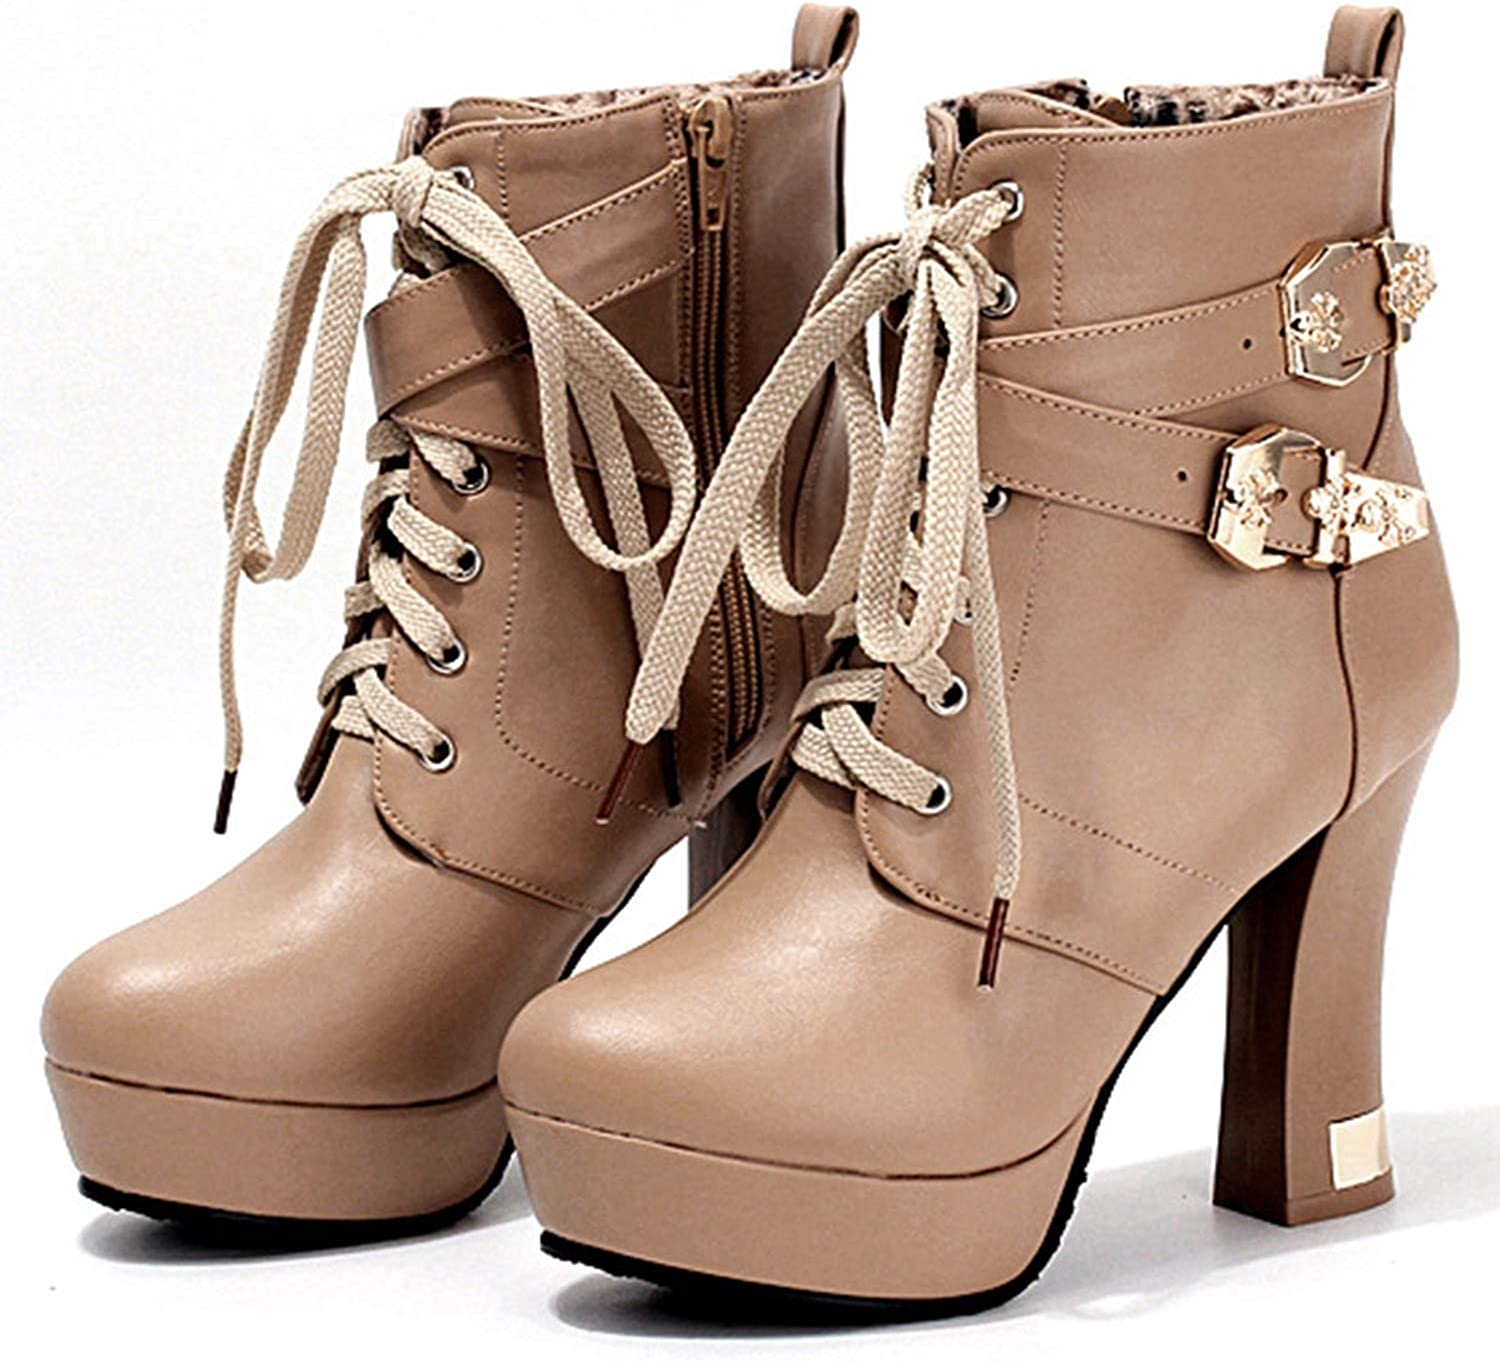 Lace up Equestrian Ankle Boots High Hoof Heels shoes Round Toe Cross-Tied Buckle Riding Boot